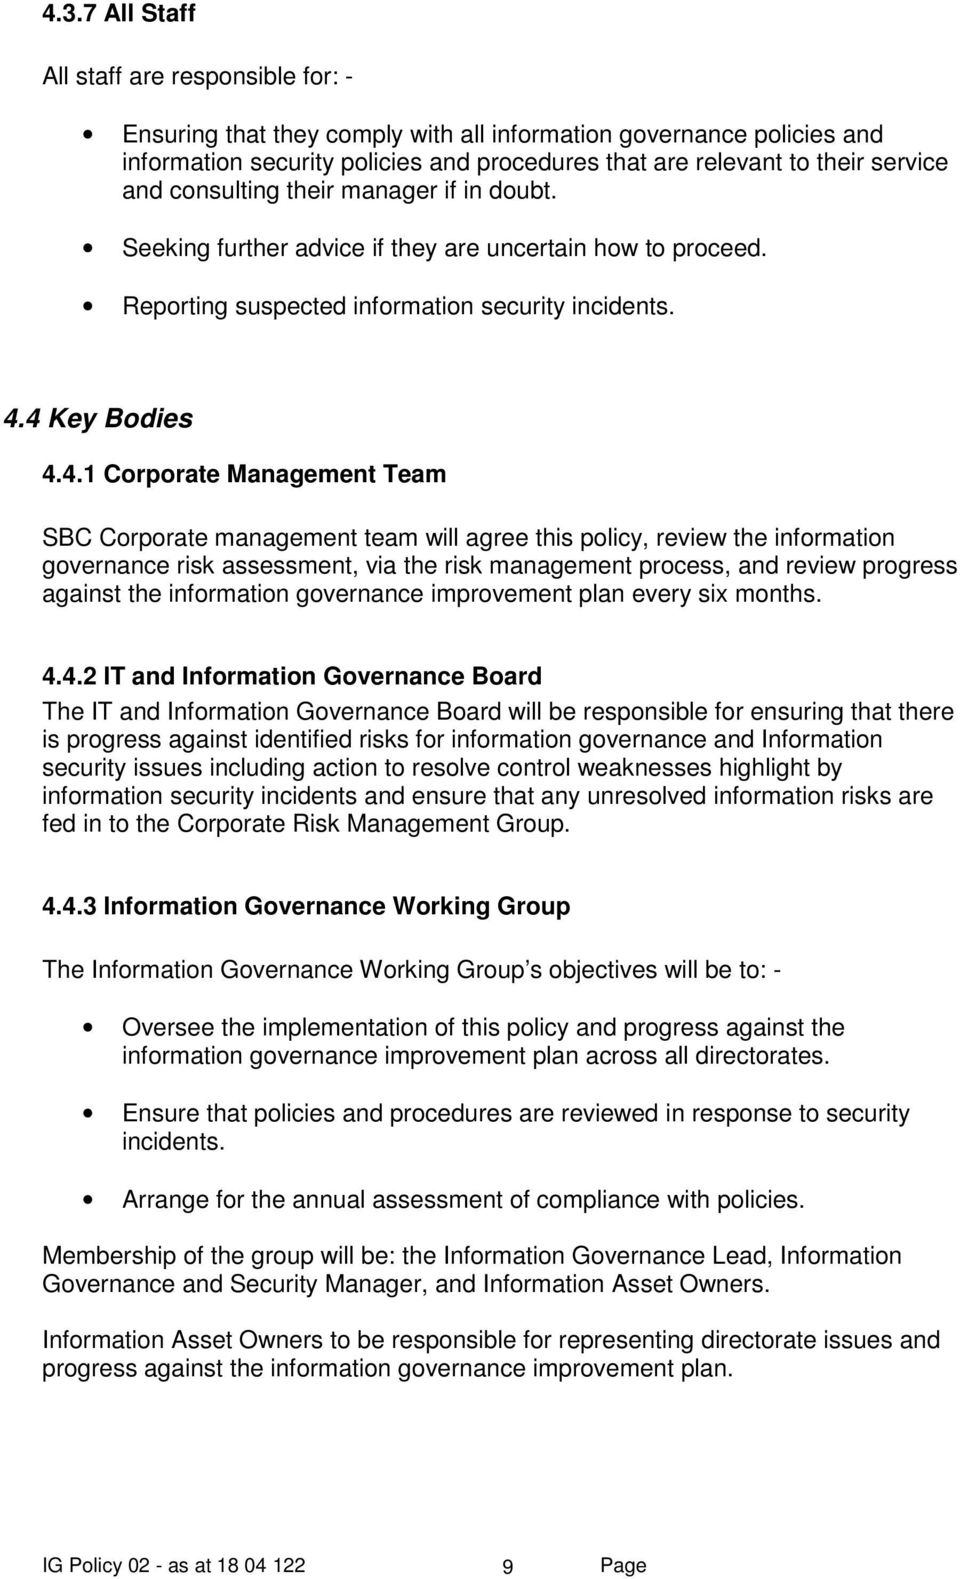 4 Key Bodies 4.4.1 Corporate Management Team SBC Corporate management team will agree this policy, review the information governance risk assessment, via the risk management process, and review